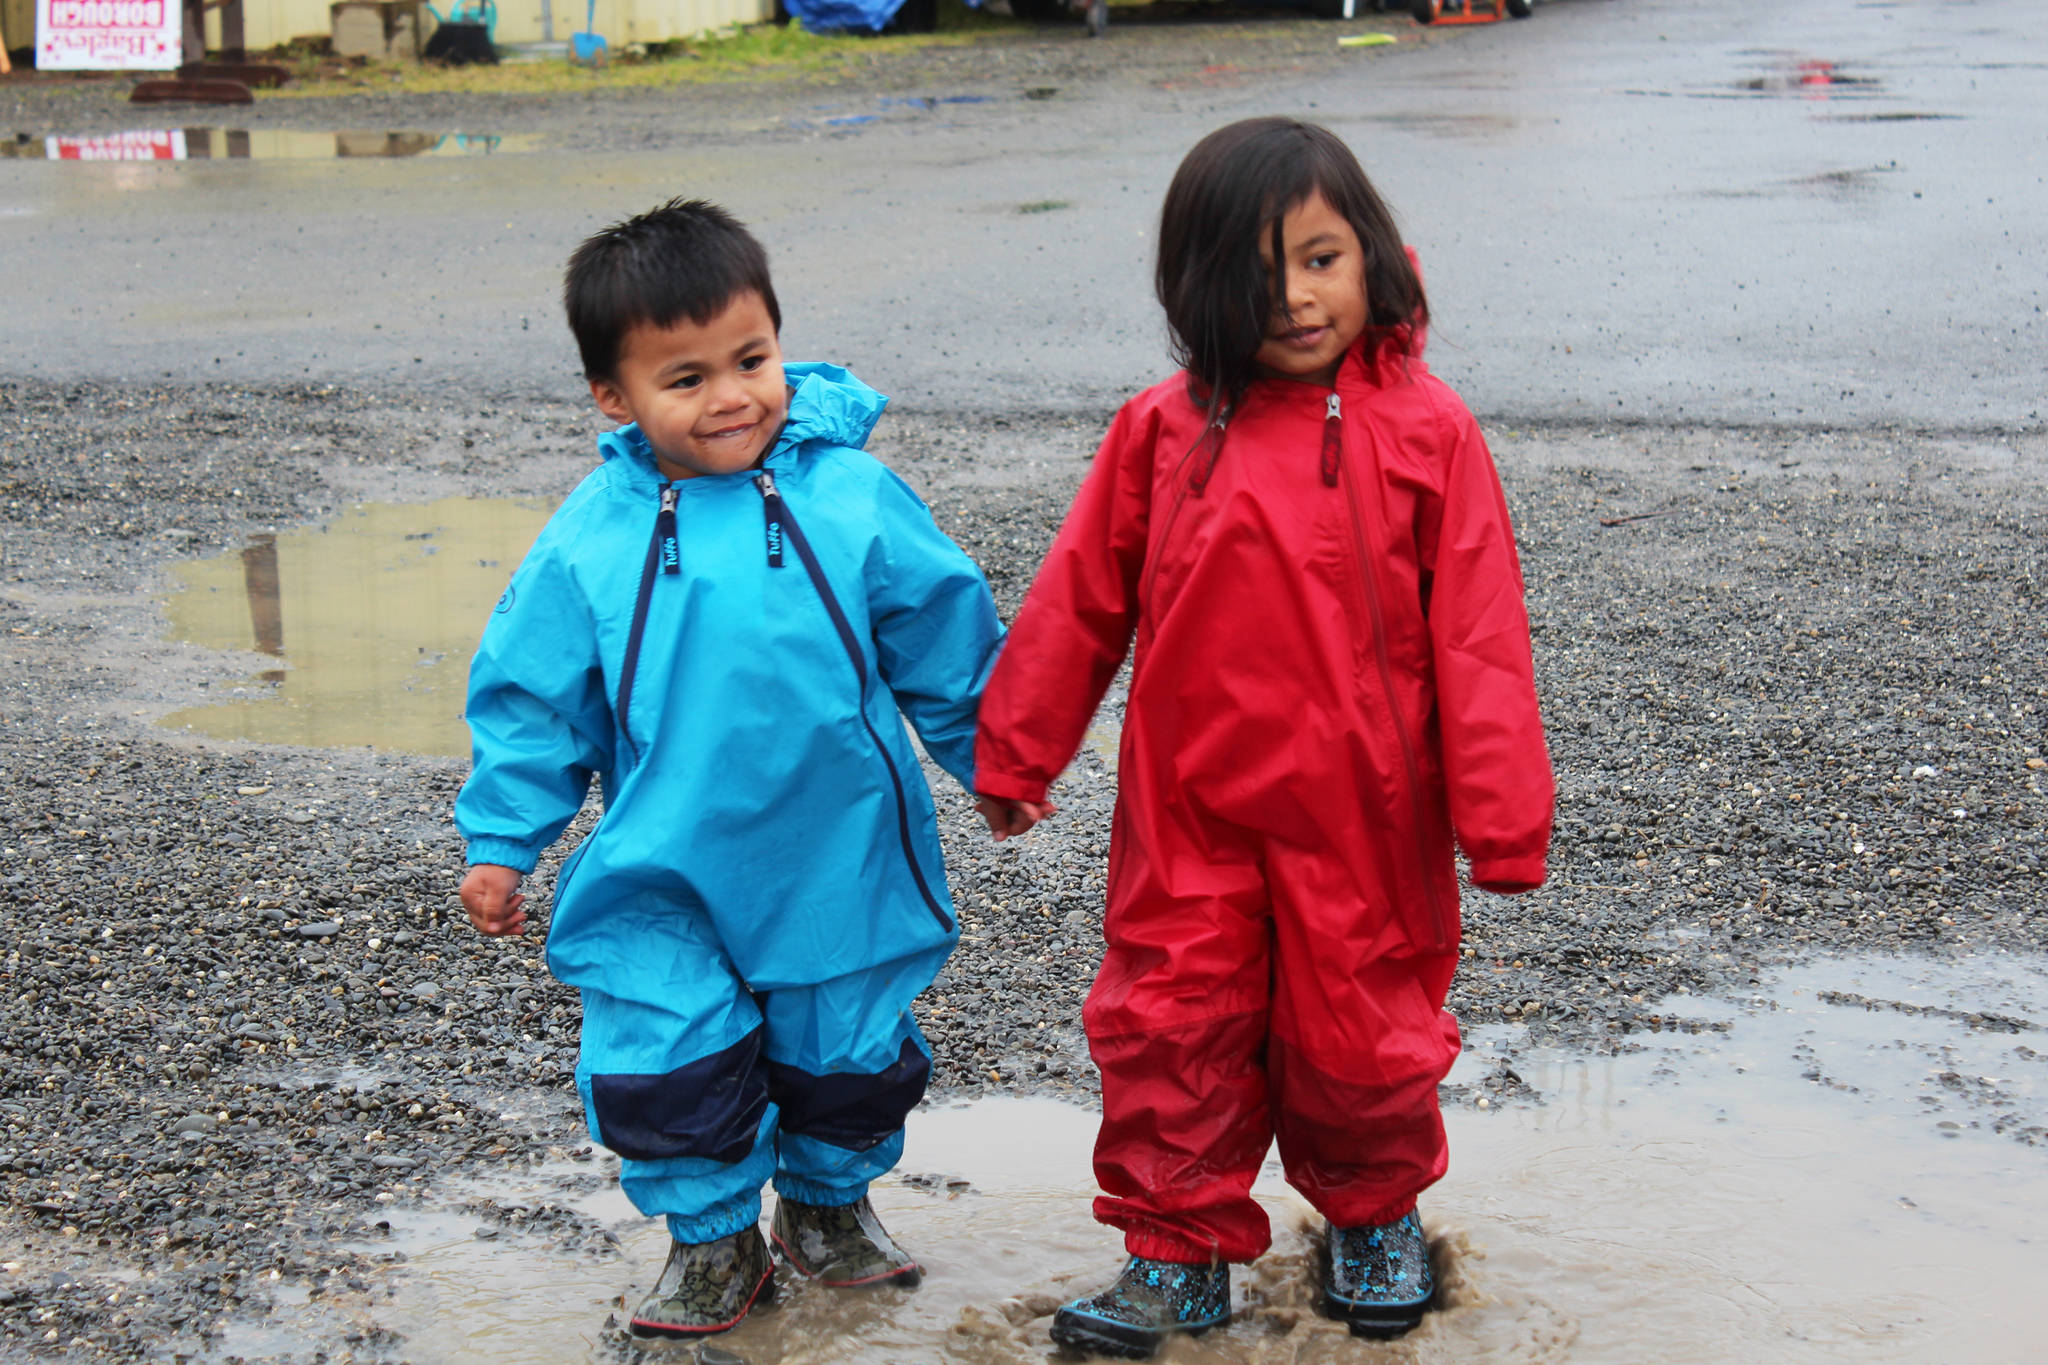 Siblings Everett Malone, 3, and Kaydence Malone, 4, splash around in the puddles spotting the fairgrounds during this year's Kenai Peninsula Fair on Friday, Aug. 18, 2017 in Ninilchik, Alaska. (Photo by Megan Pacer/Homer News)